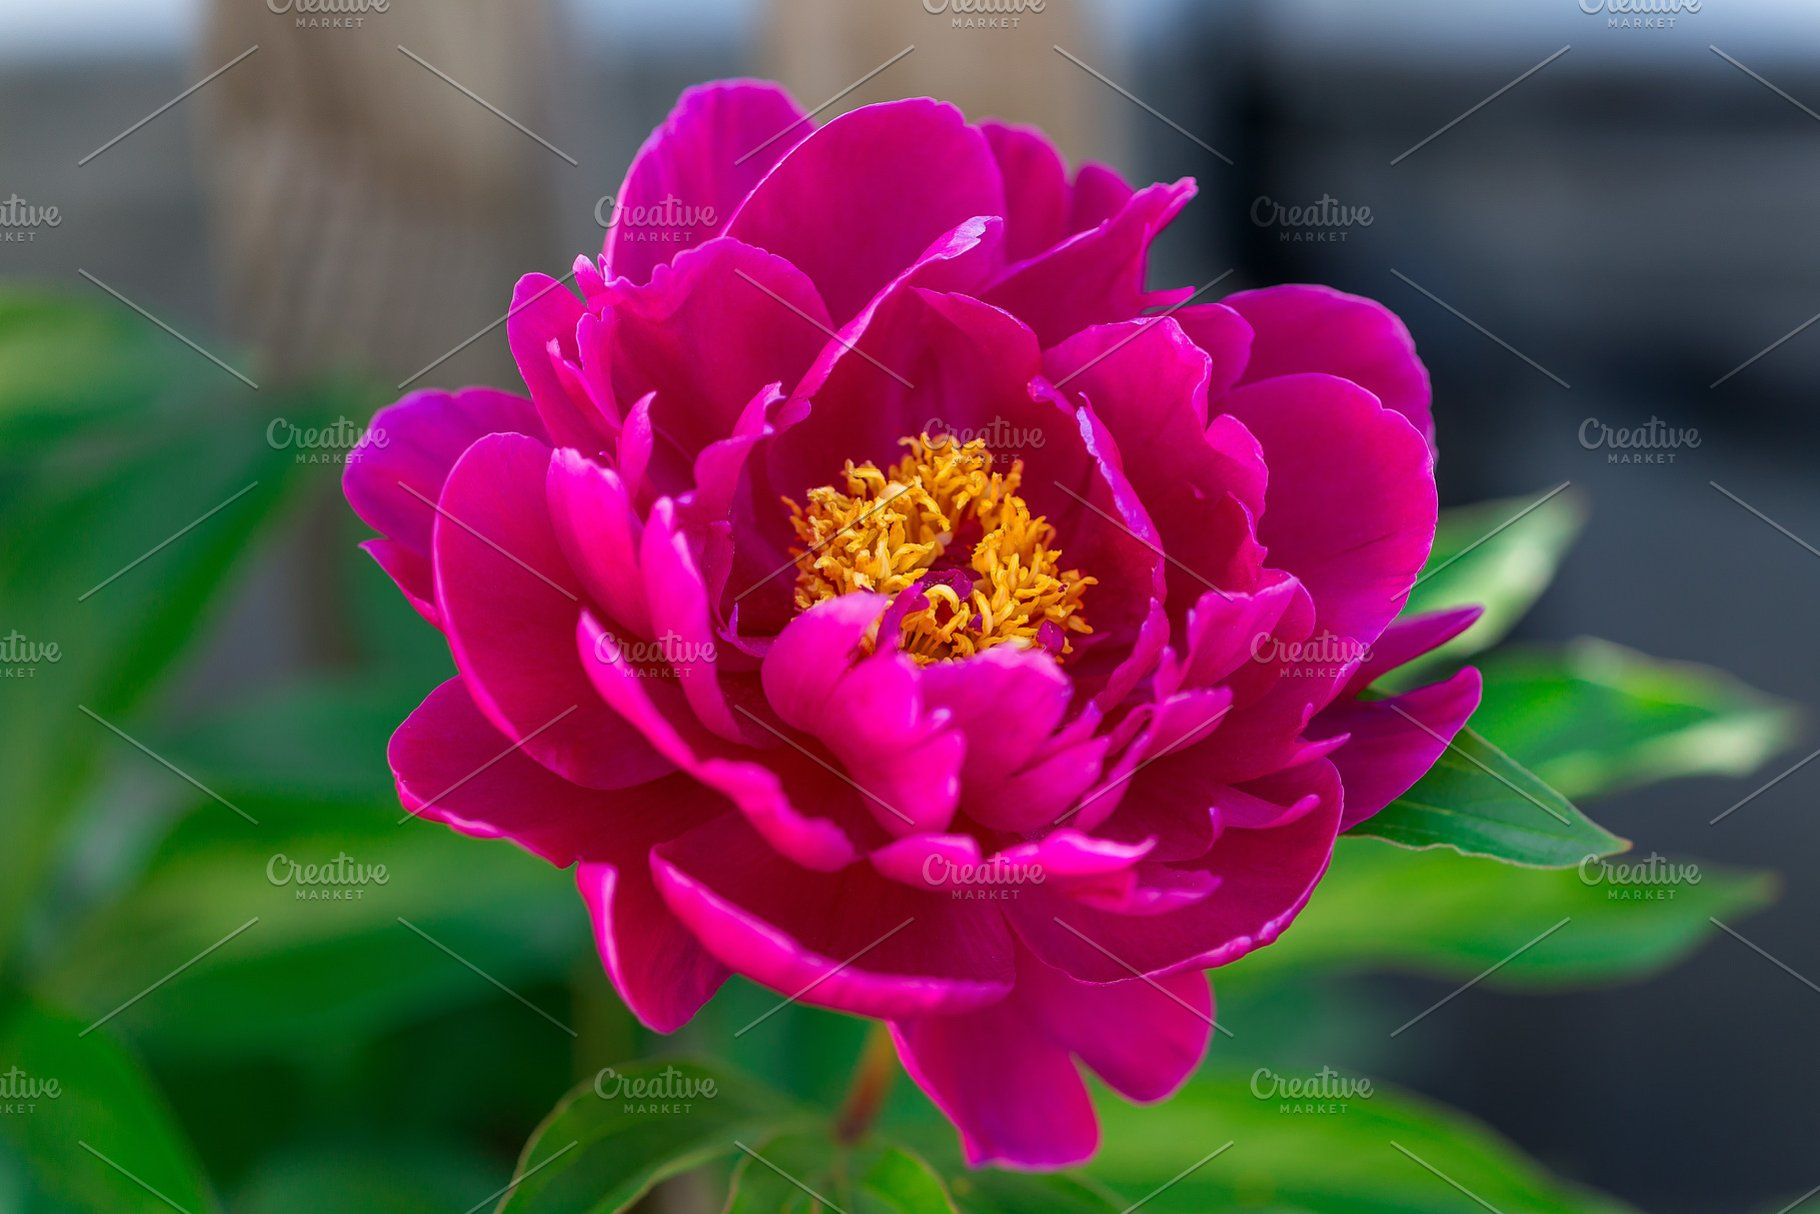 Dark Pink Peony Flower Growing In Th High Quality Nature Stock